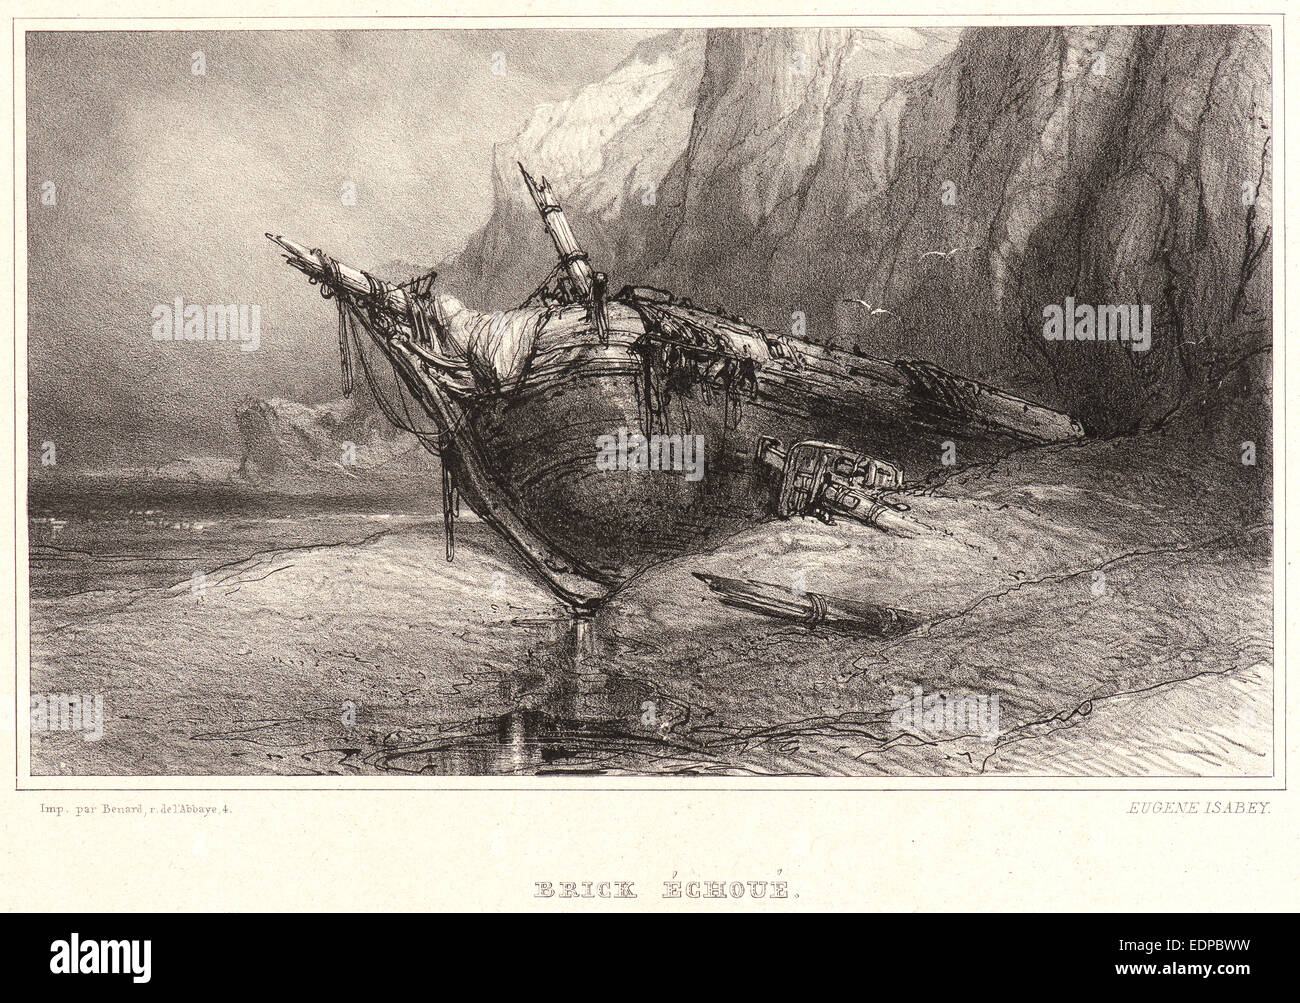 Eugène Isabey (French, 1803 - 1886). Stranded Brig, 19th century. Lithograph. First of three states - Stock Image